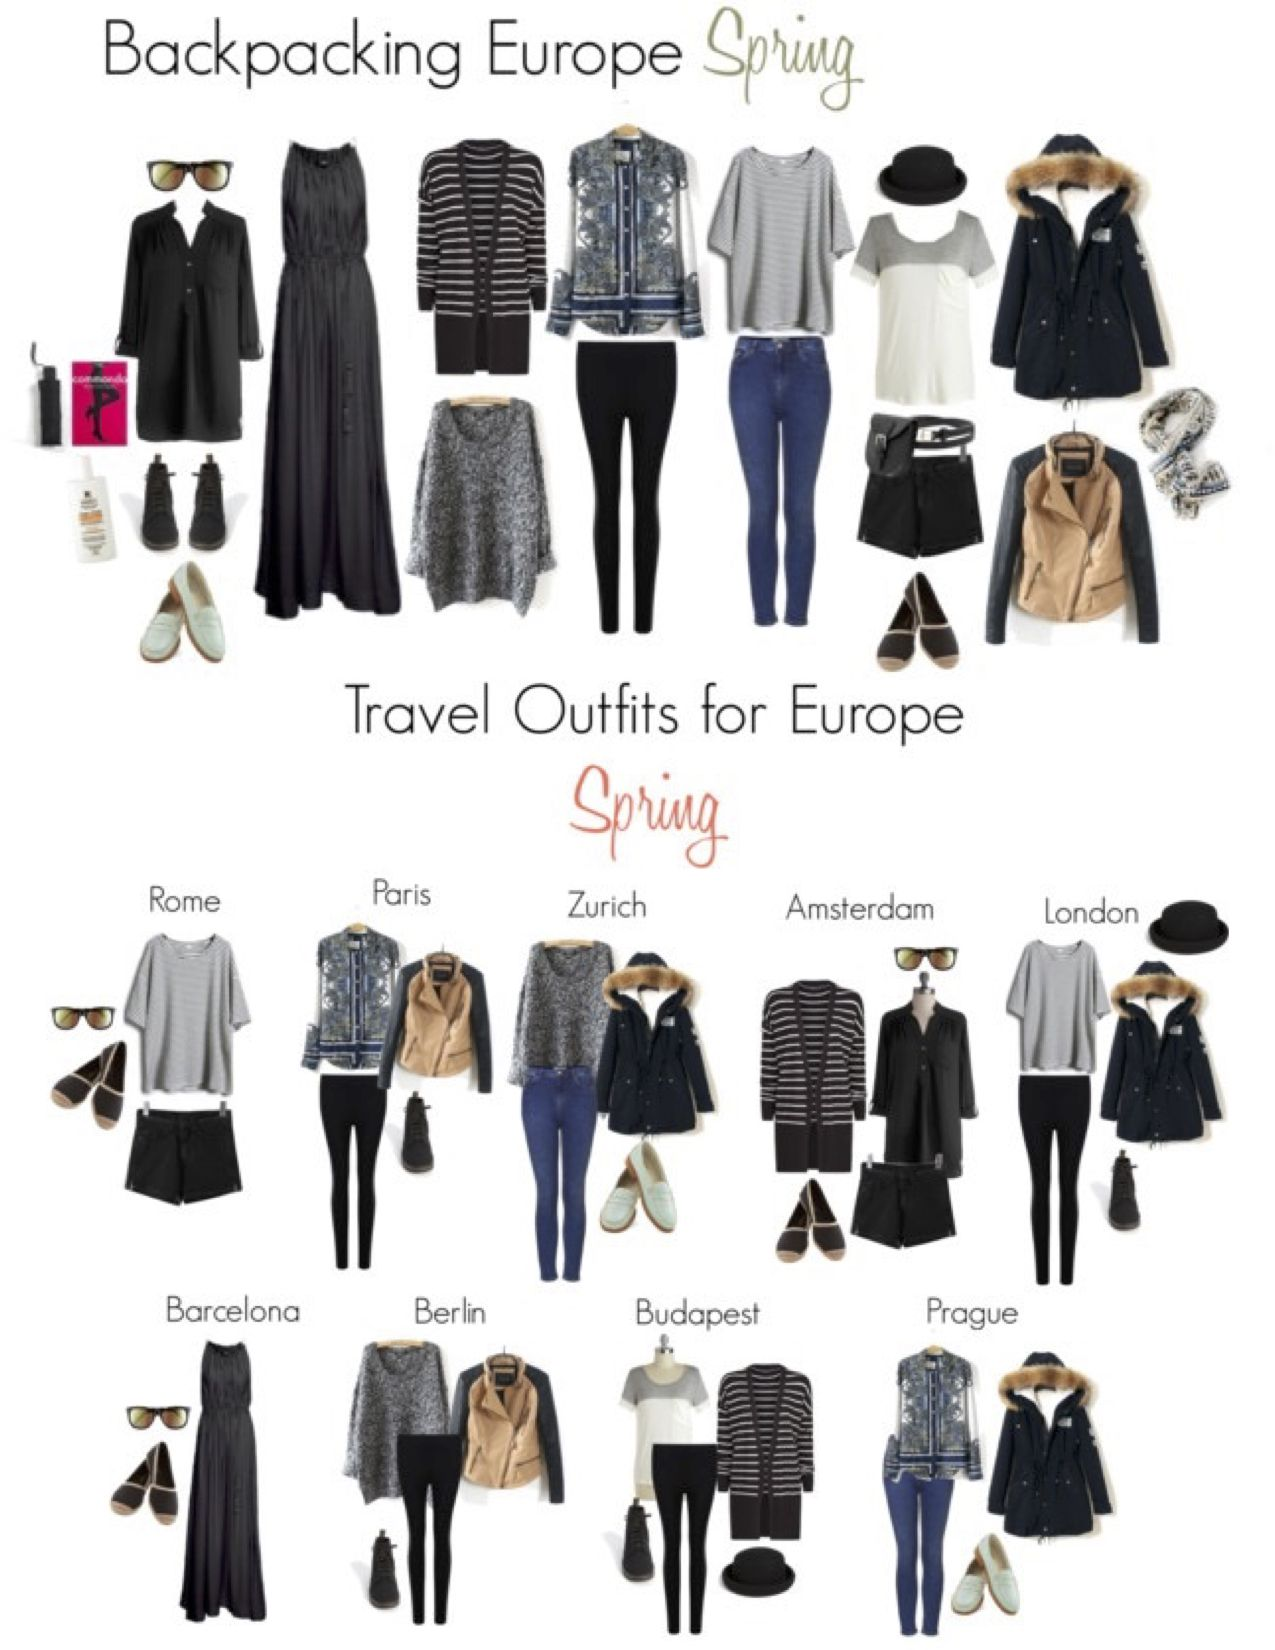 Backpacking In Europe This Spring Packing List And